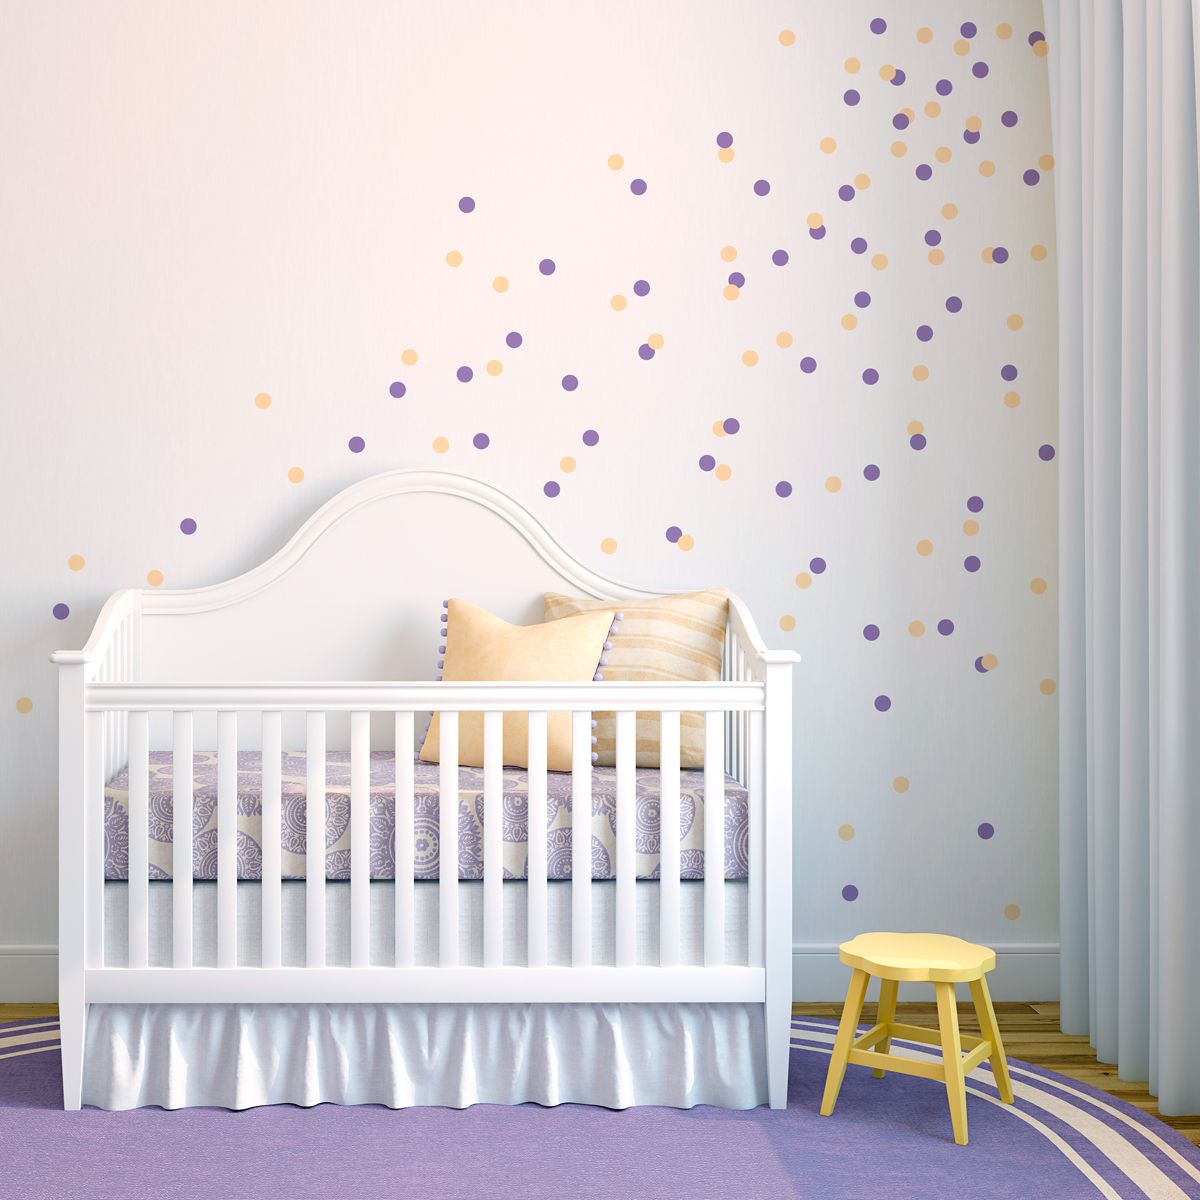 Confetti Dots Wall Decal #nursery #decor | Wall Decals | Pinterest ...